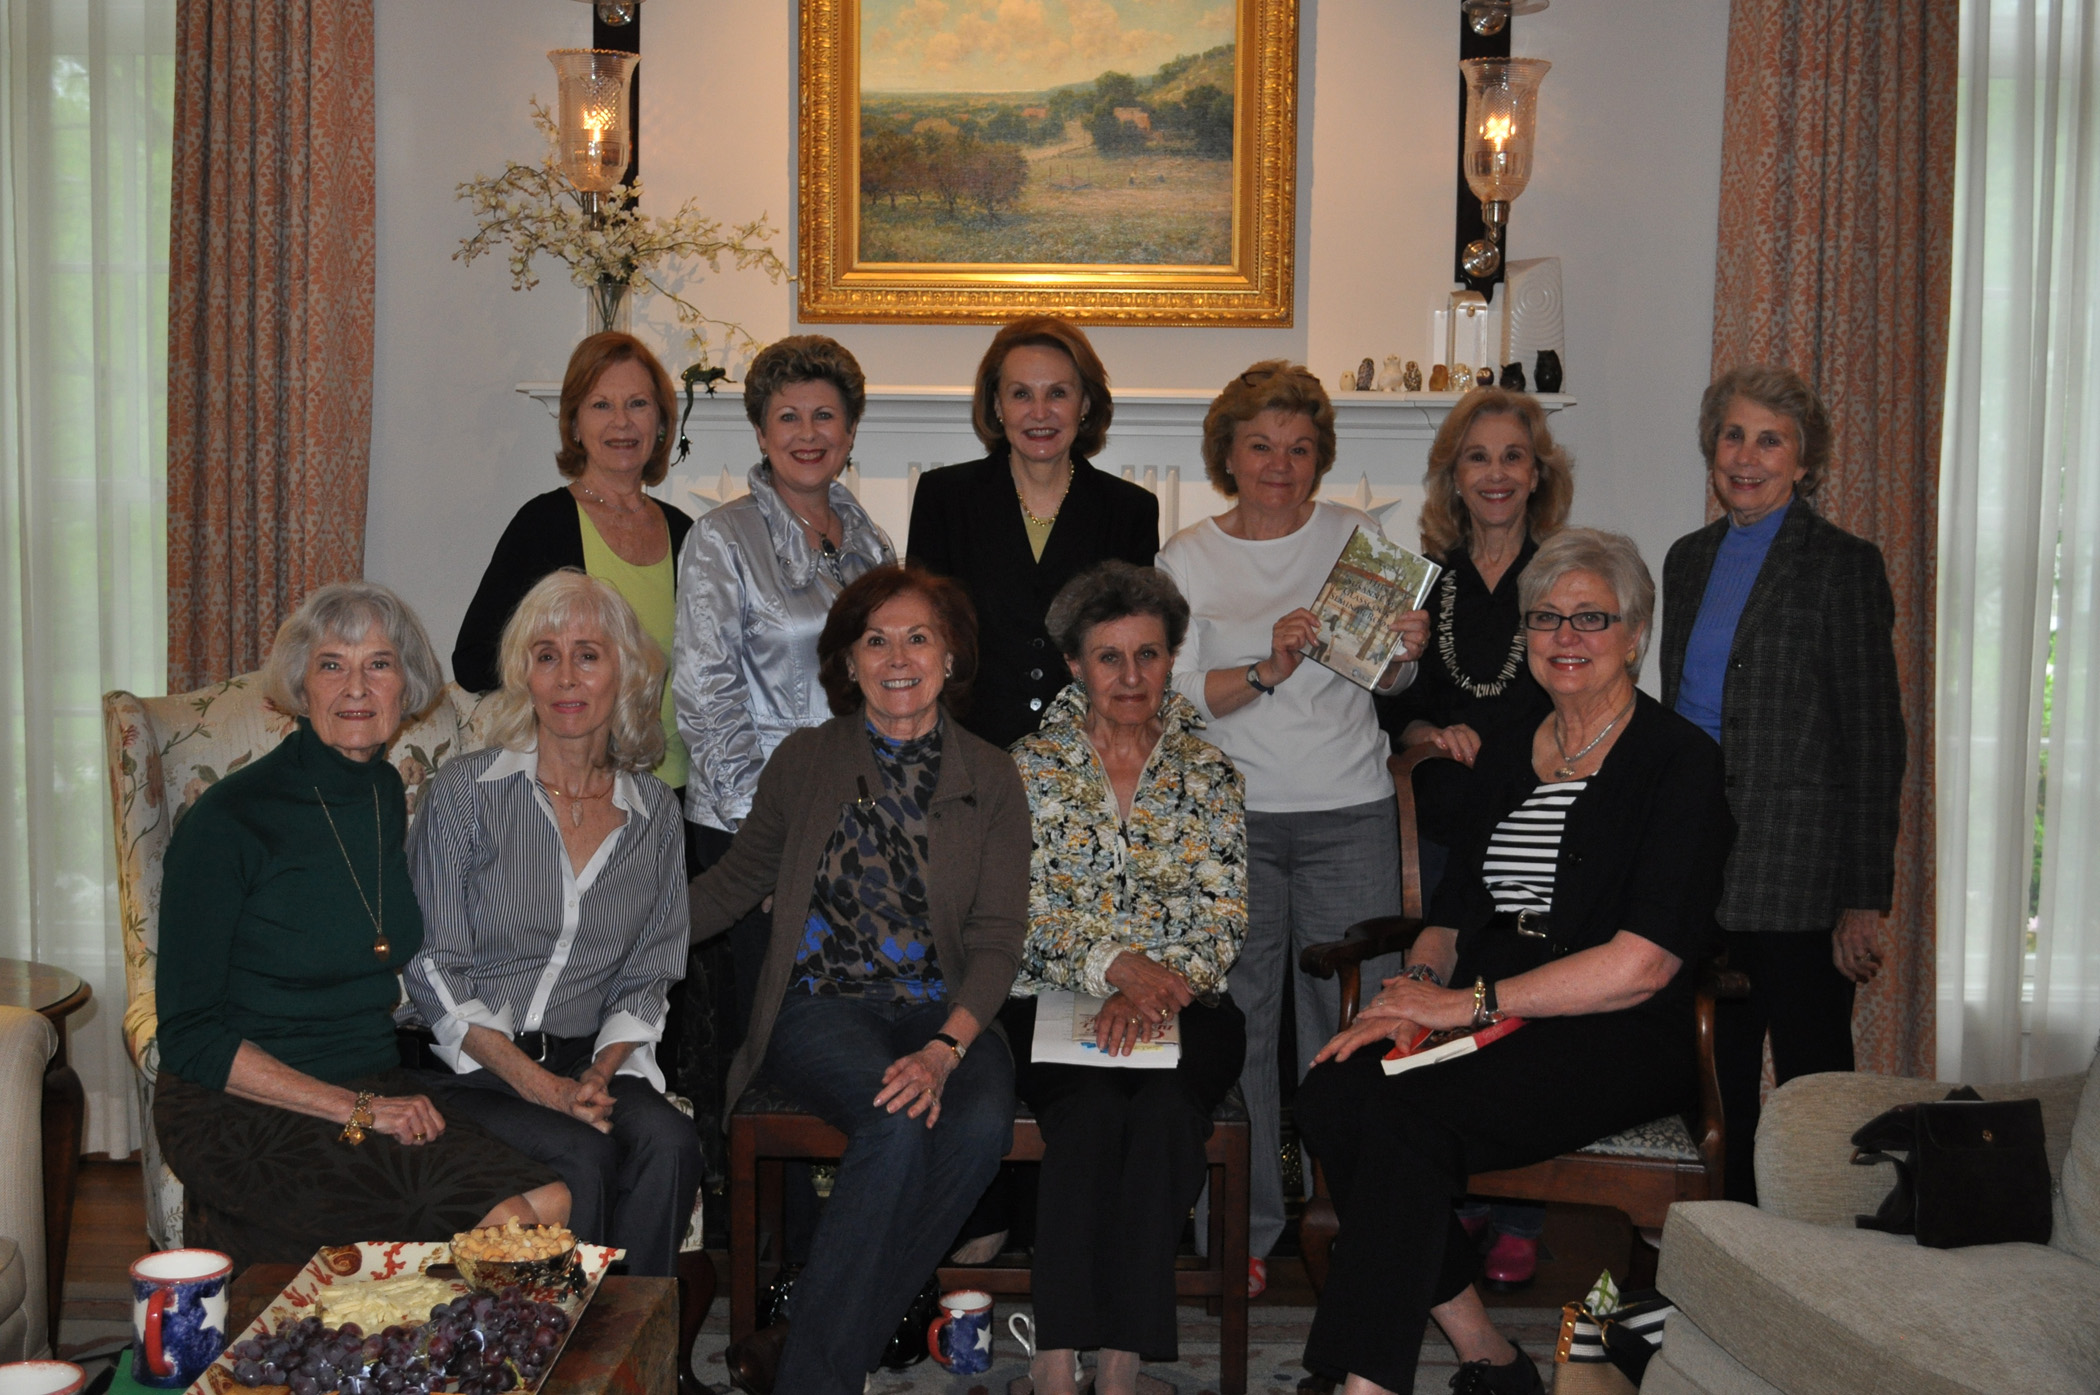 Group photo of The Book Club, March 2012